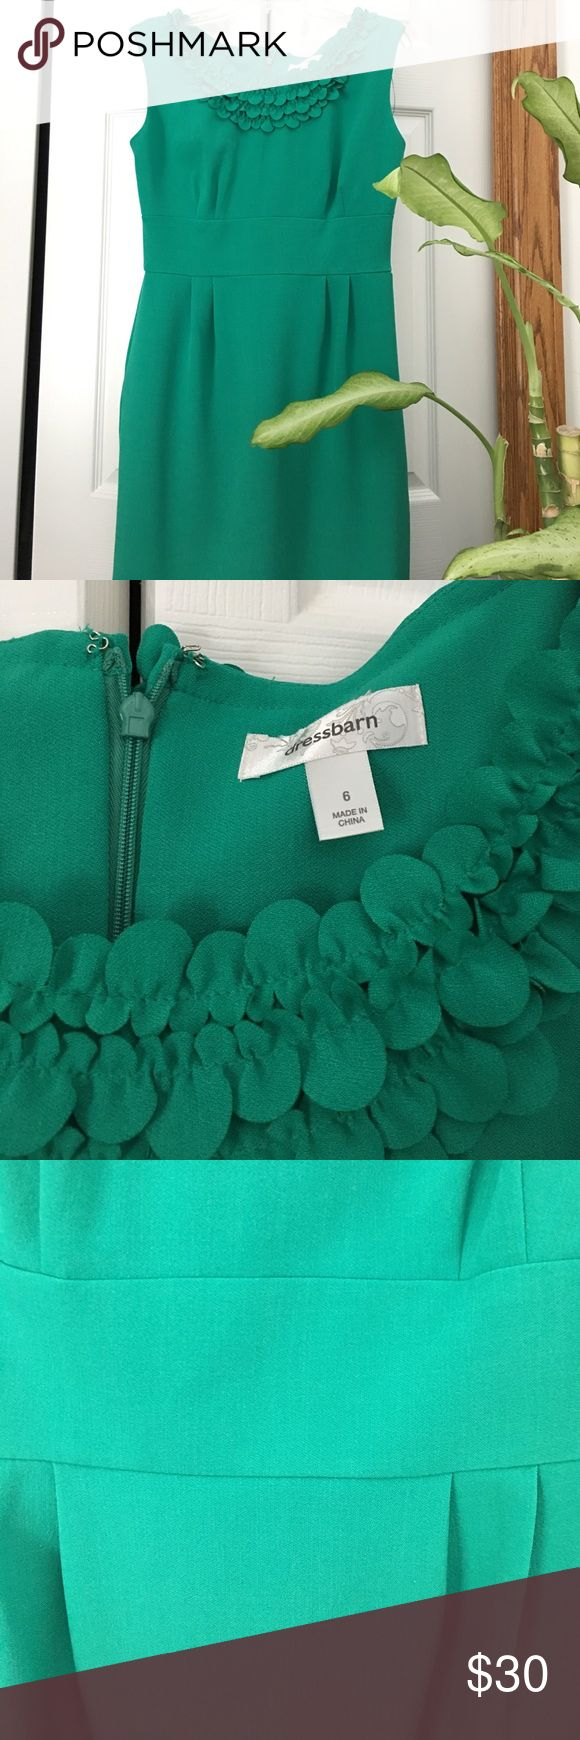 Kelly green dress Beautiful Dress in Kelly green.  Pics do not show actual color.  Size 6. Polyester/Spandex blend. Dress Barn Dresses